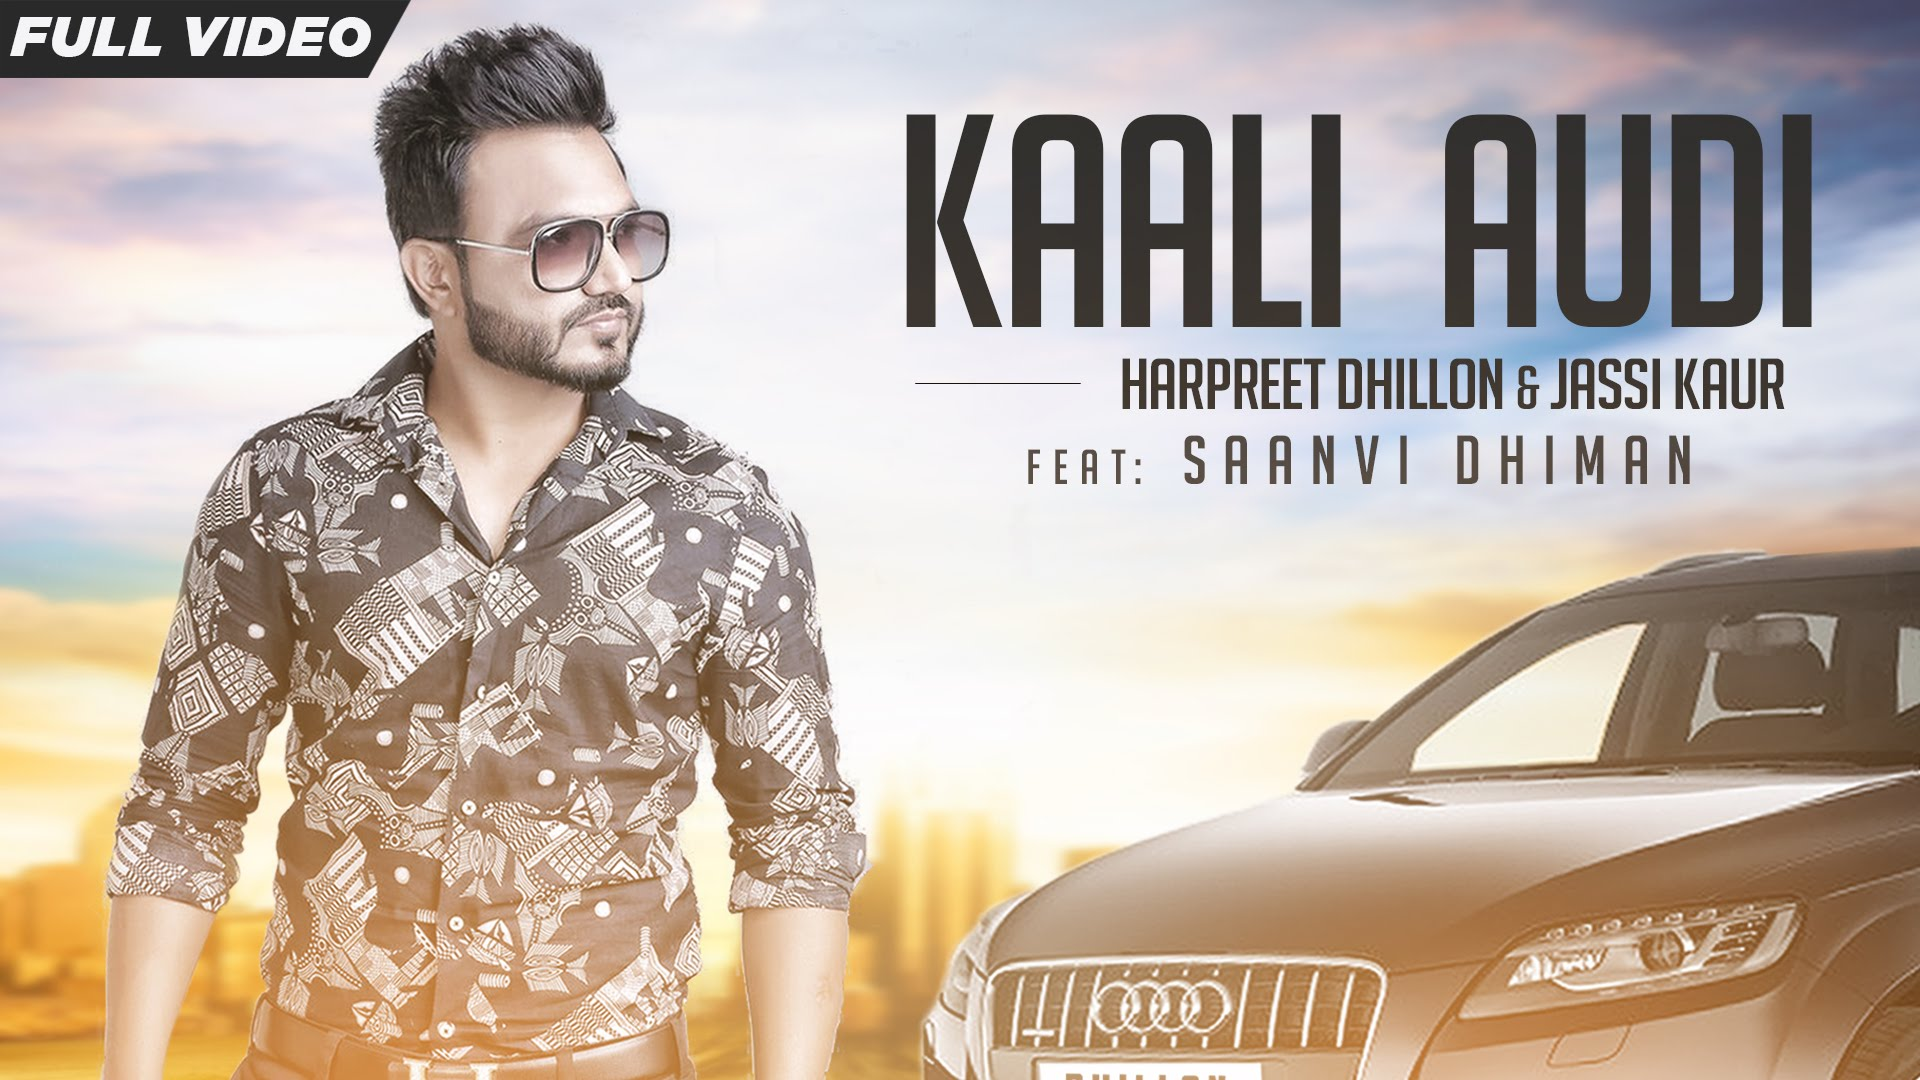 Kaali audi harpreet dhillon song lyrics